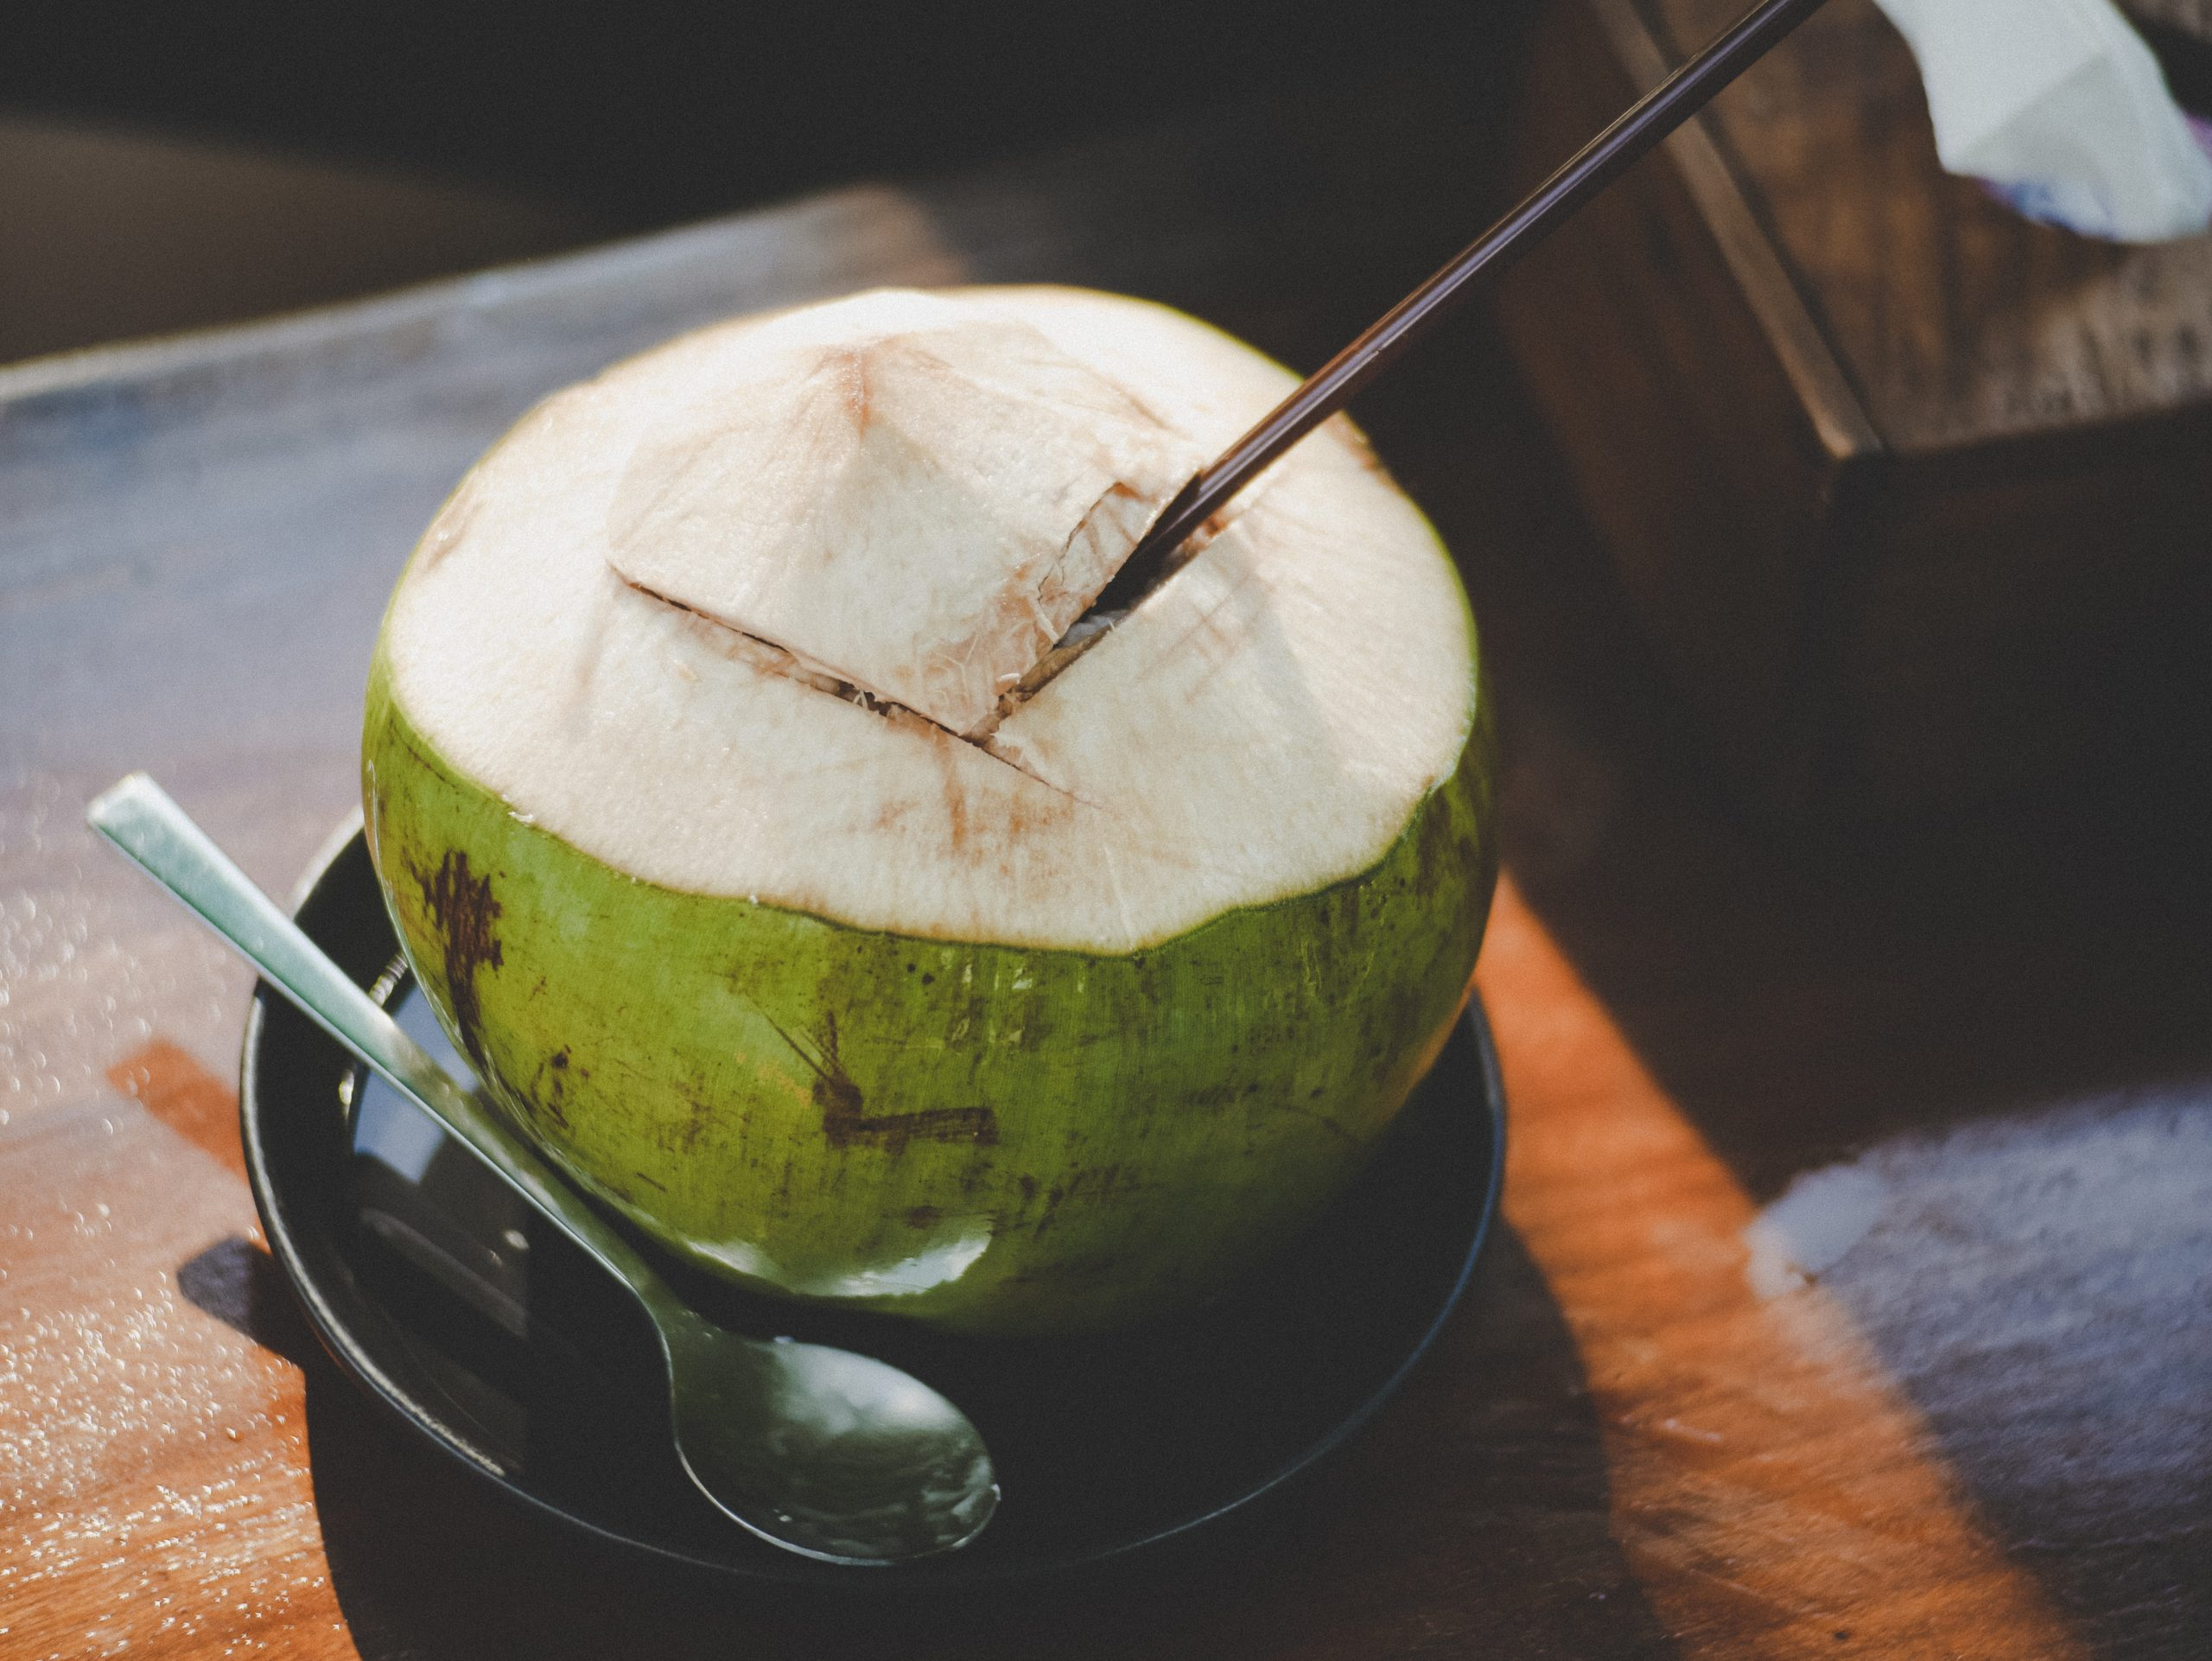 Benefits from coconut